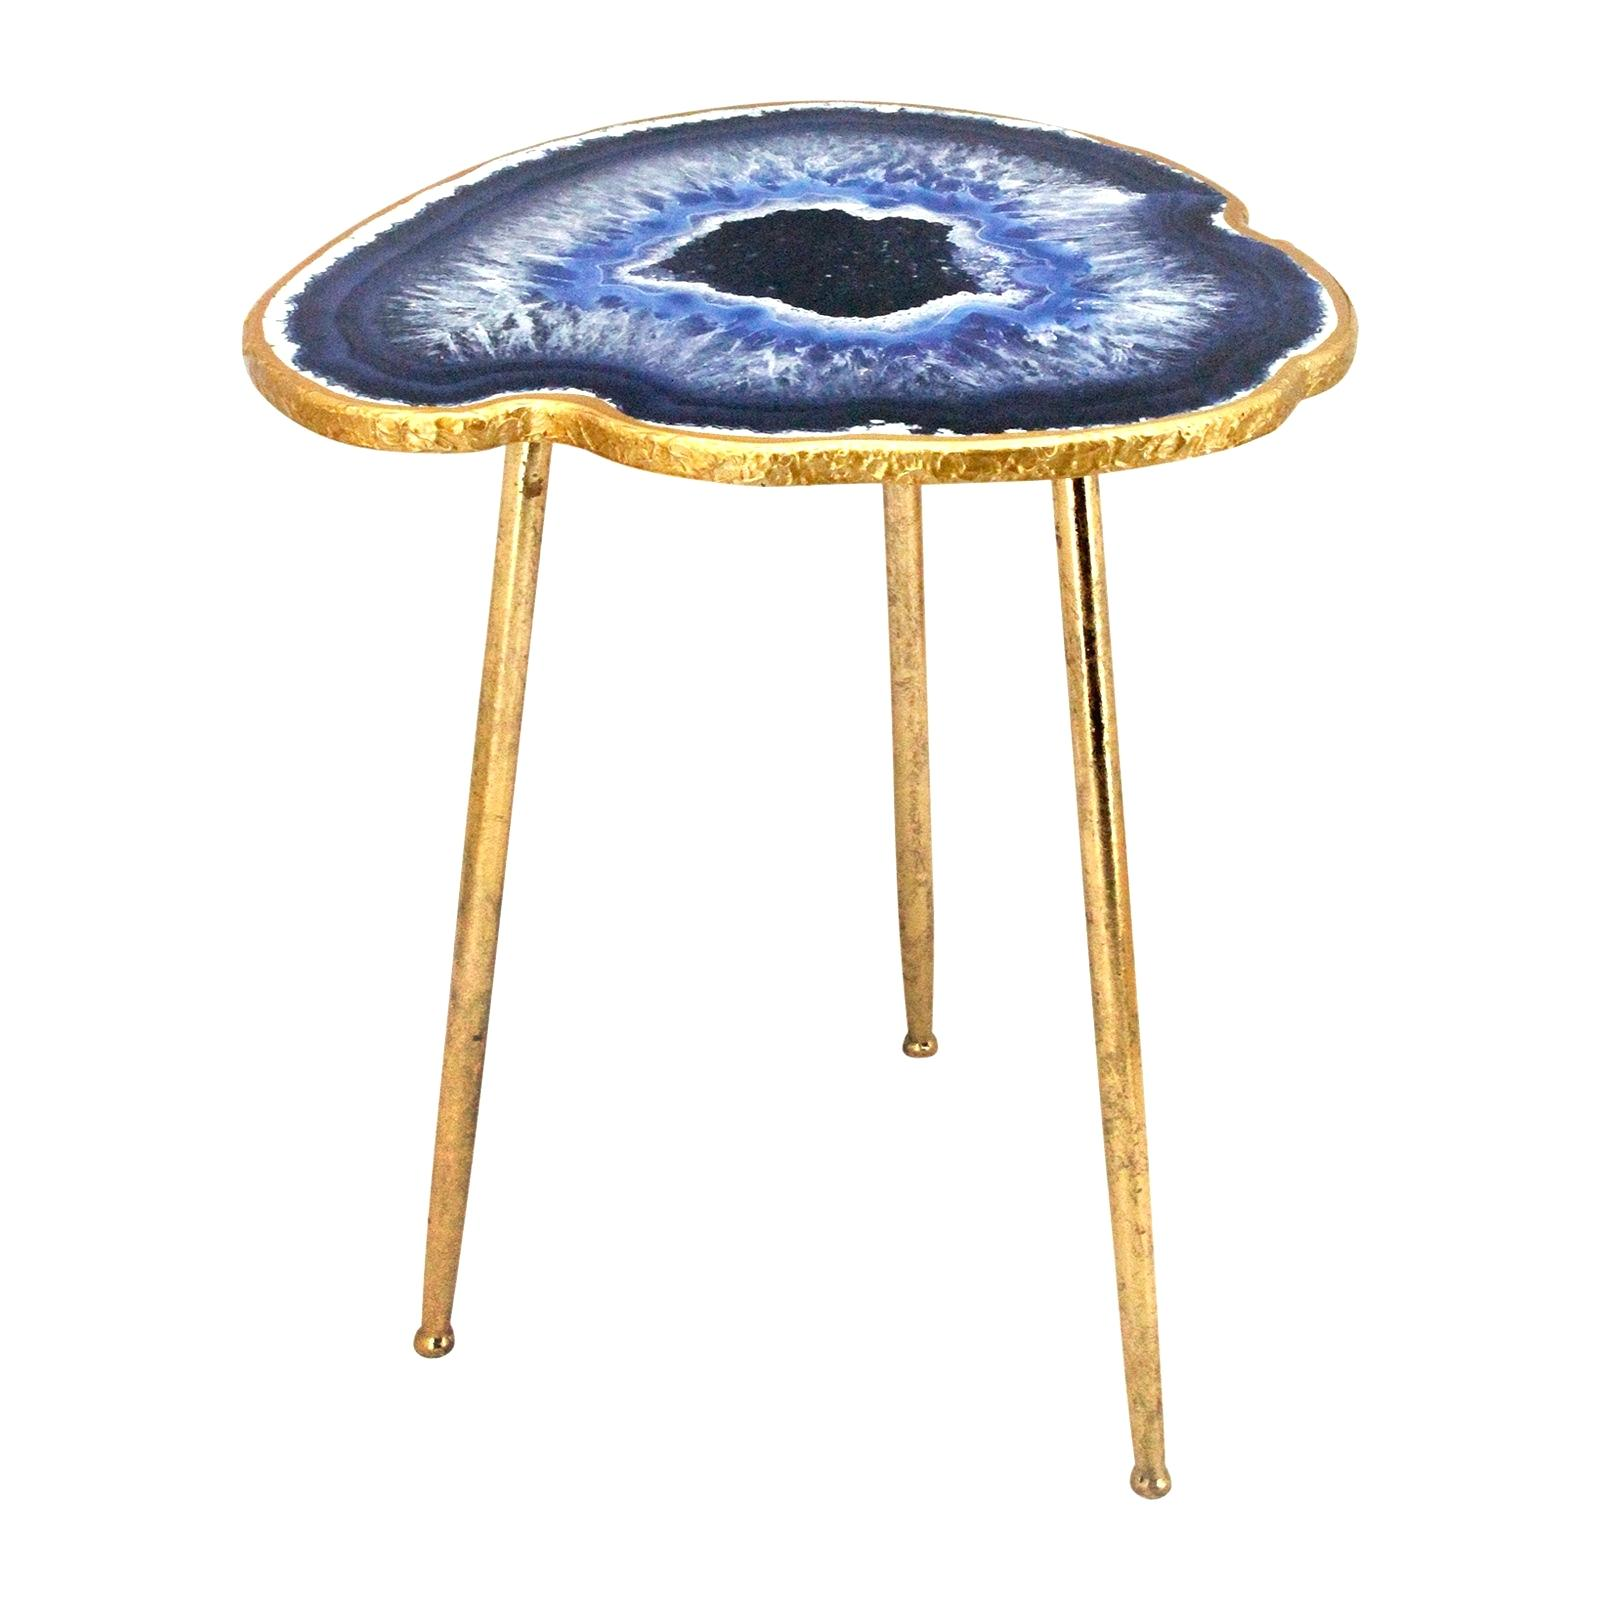 agate accent table gold and blue metal threshold glass faux patio tiles antique ese lamps modern brass lamp light wood end tables frame coffee kitchen dining room mini clear